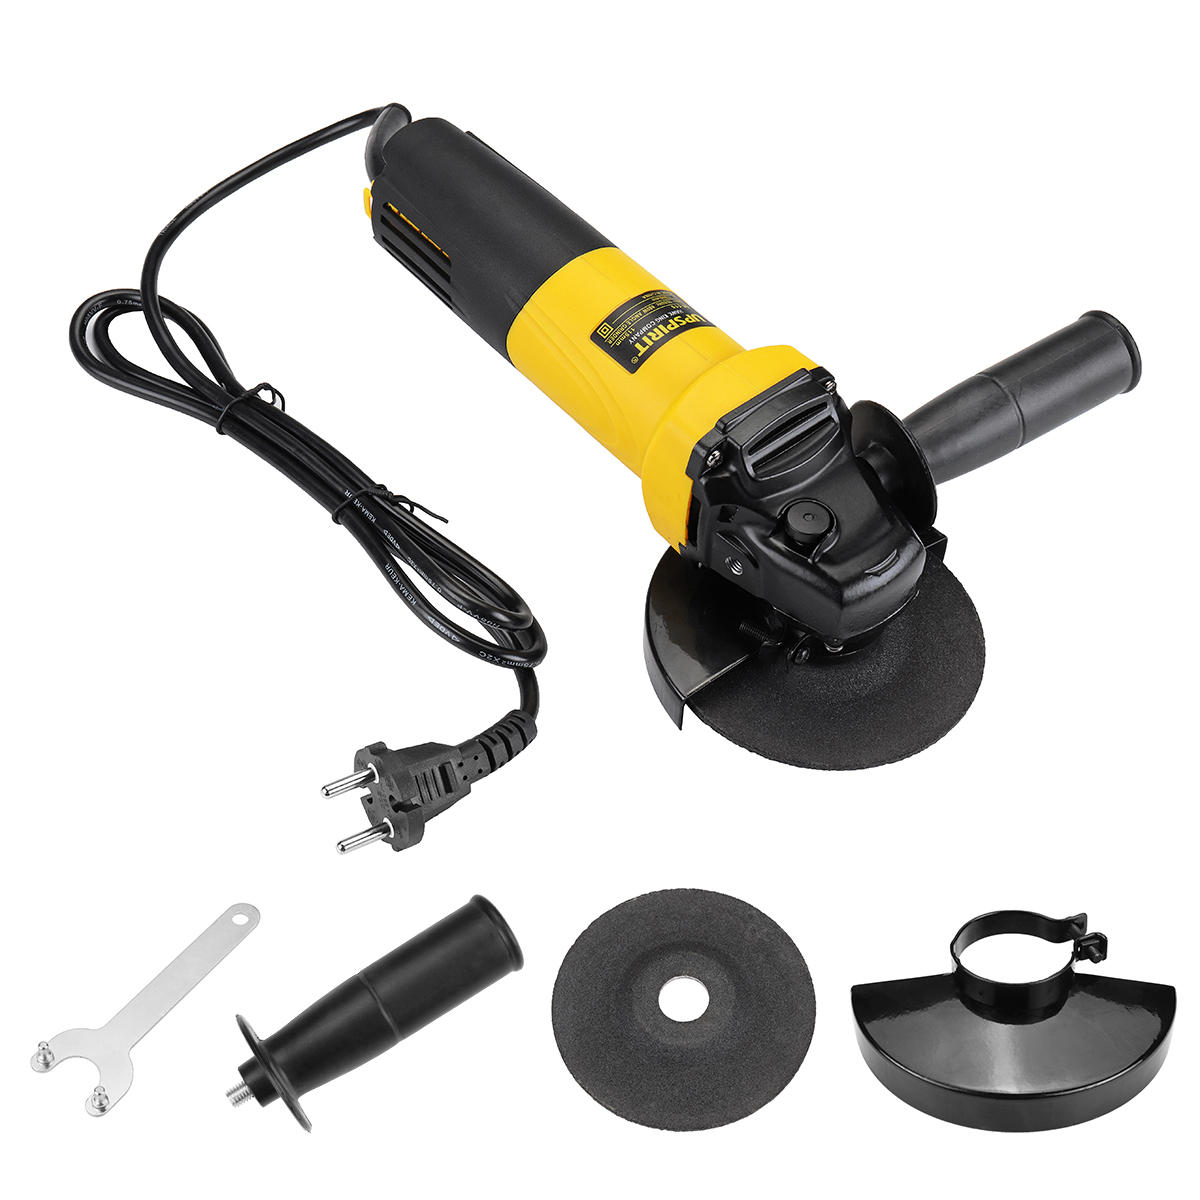 Ac220v 880w Electric Angle Grinder Heavy Duty Sanding